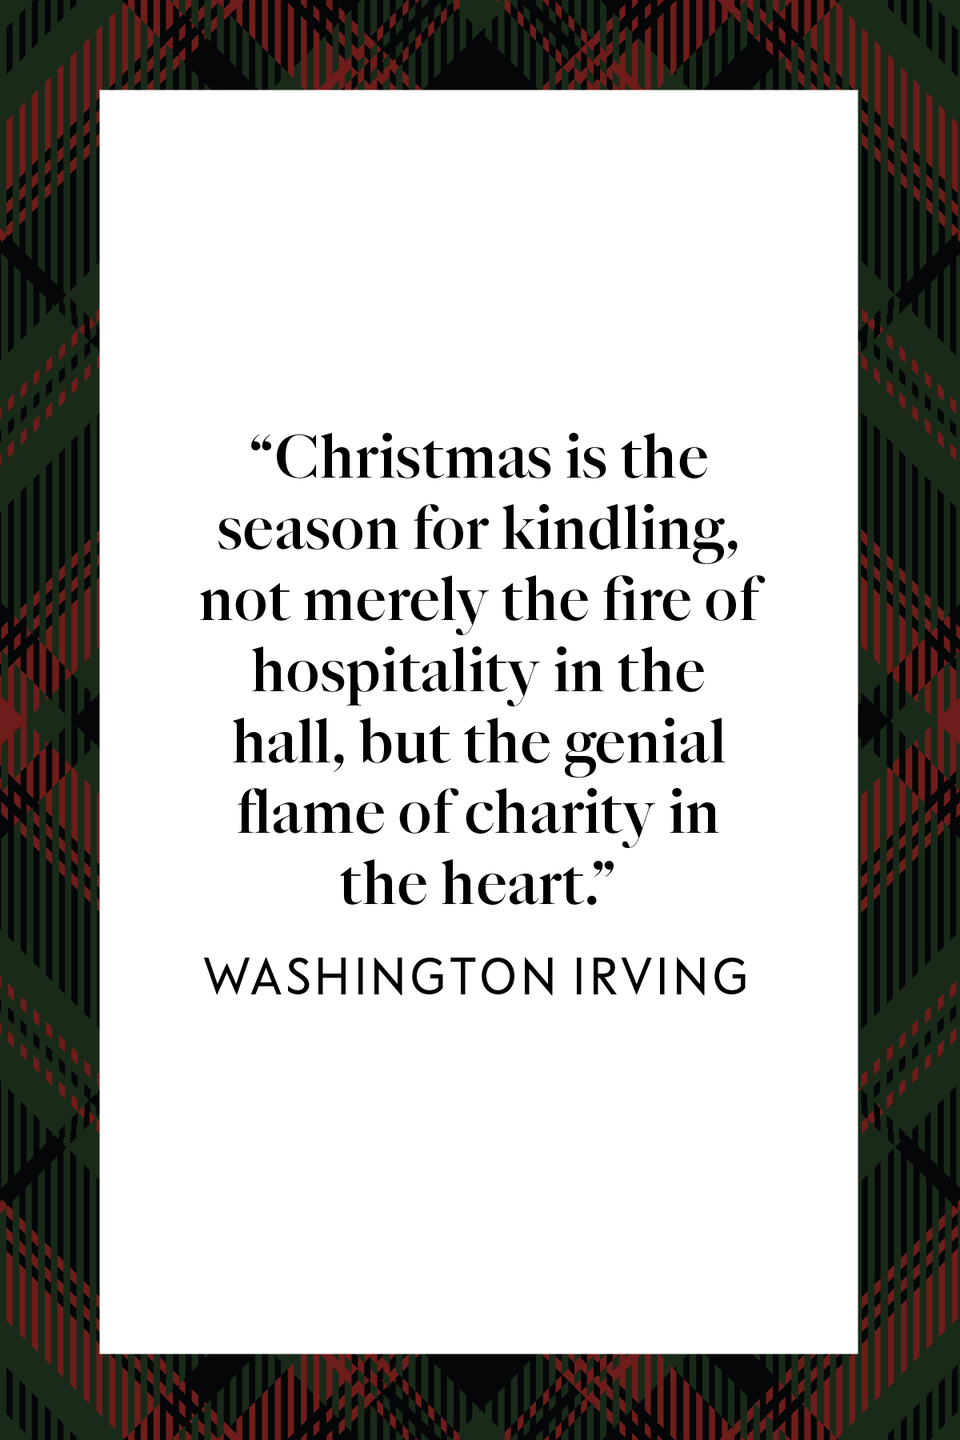 "<p><em>The Legend of Sleepy Hollow</em> author Washington Irving wrote ""[Christmas] is the season for kindling, not merely the fire of hospitality in the hall, but the genial flame of charity in the heart,"" in the first chapter of his book of holiday essays <em><a href=""https://www.google.com/books/edition/Old_Christmas/3nR792IxCy8C?hl=en&gbpv=1&printsec=frontcover"" rel=""nofollow noopener"" target=""_blank"" data-ylk=""slk:Old Christmas"" class=""link rapid-noclick-resp"">Old Christmas</a></em>.</p>"